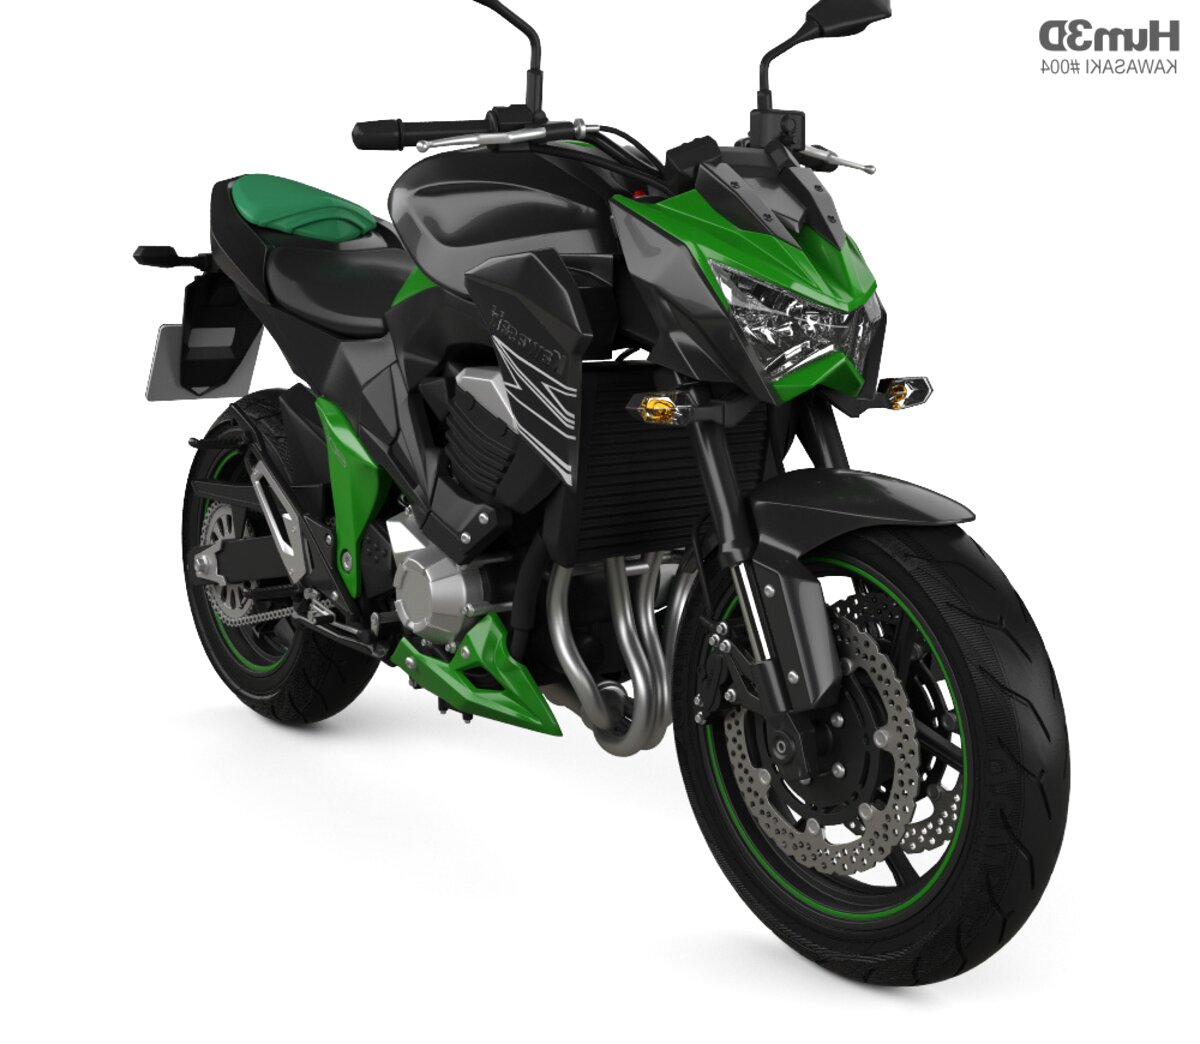 z800 d'occasion